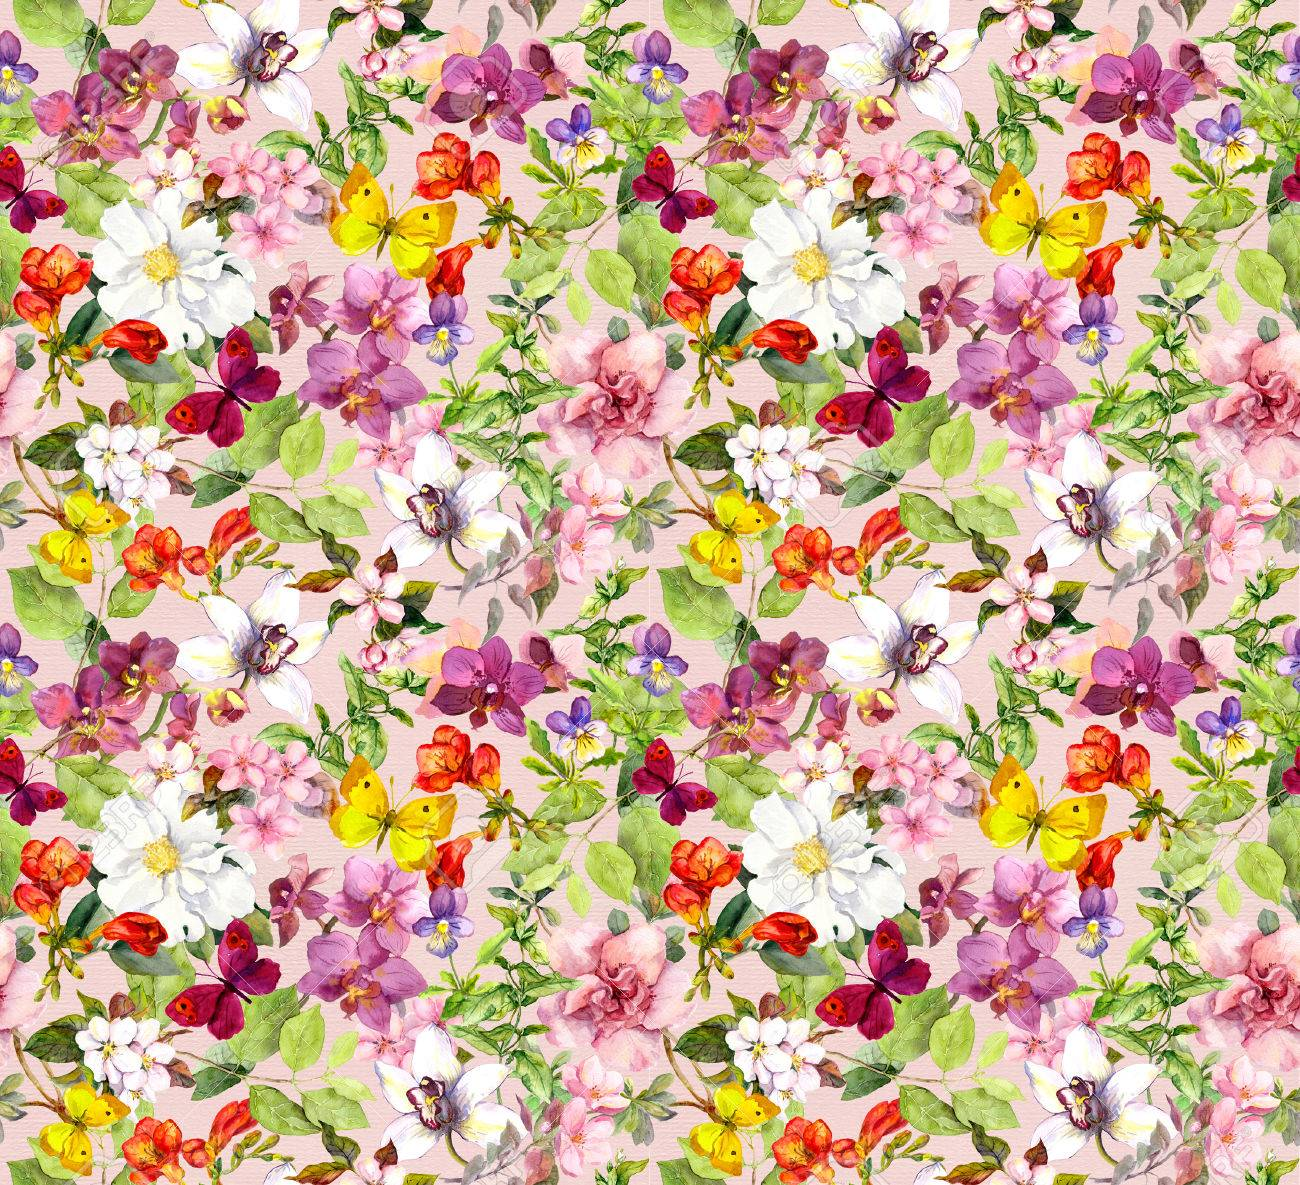 Bright Flowers And Butterflies Colorful Garden Floral Wallpaper Stock Photo Picture And Royalty Free Image Image 45666896